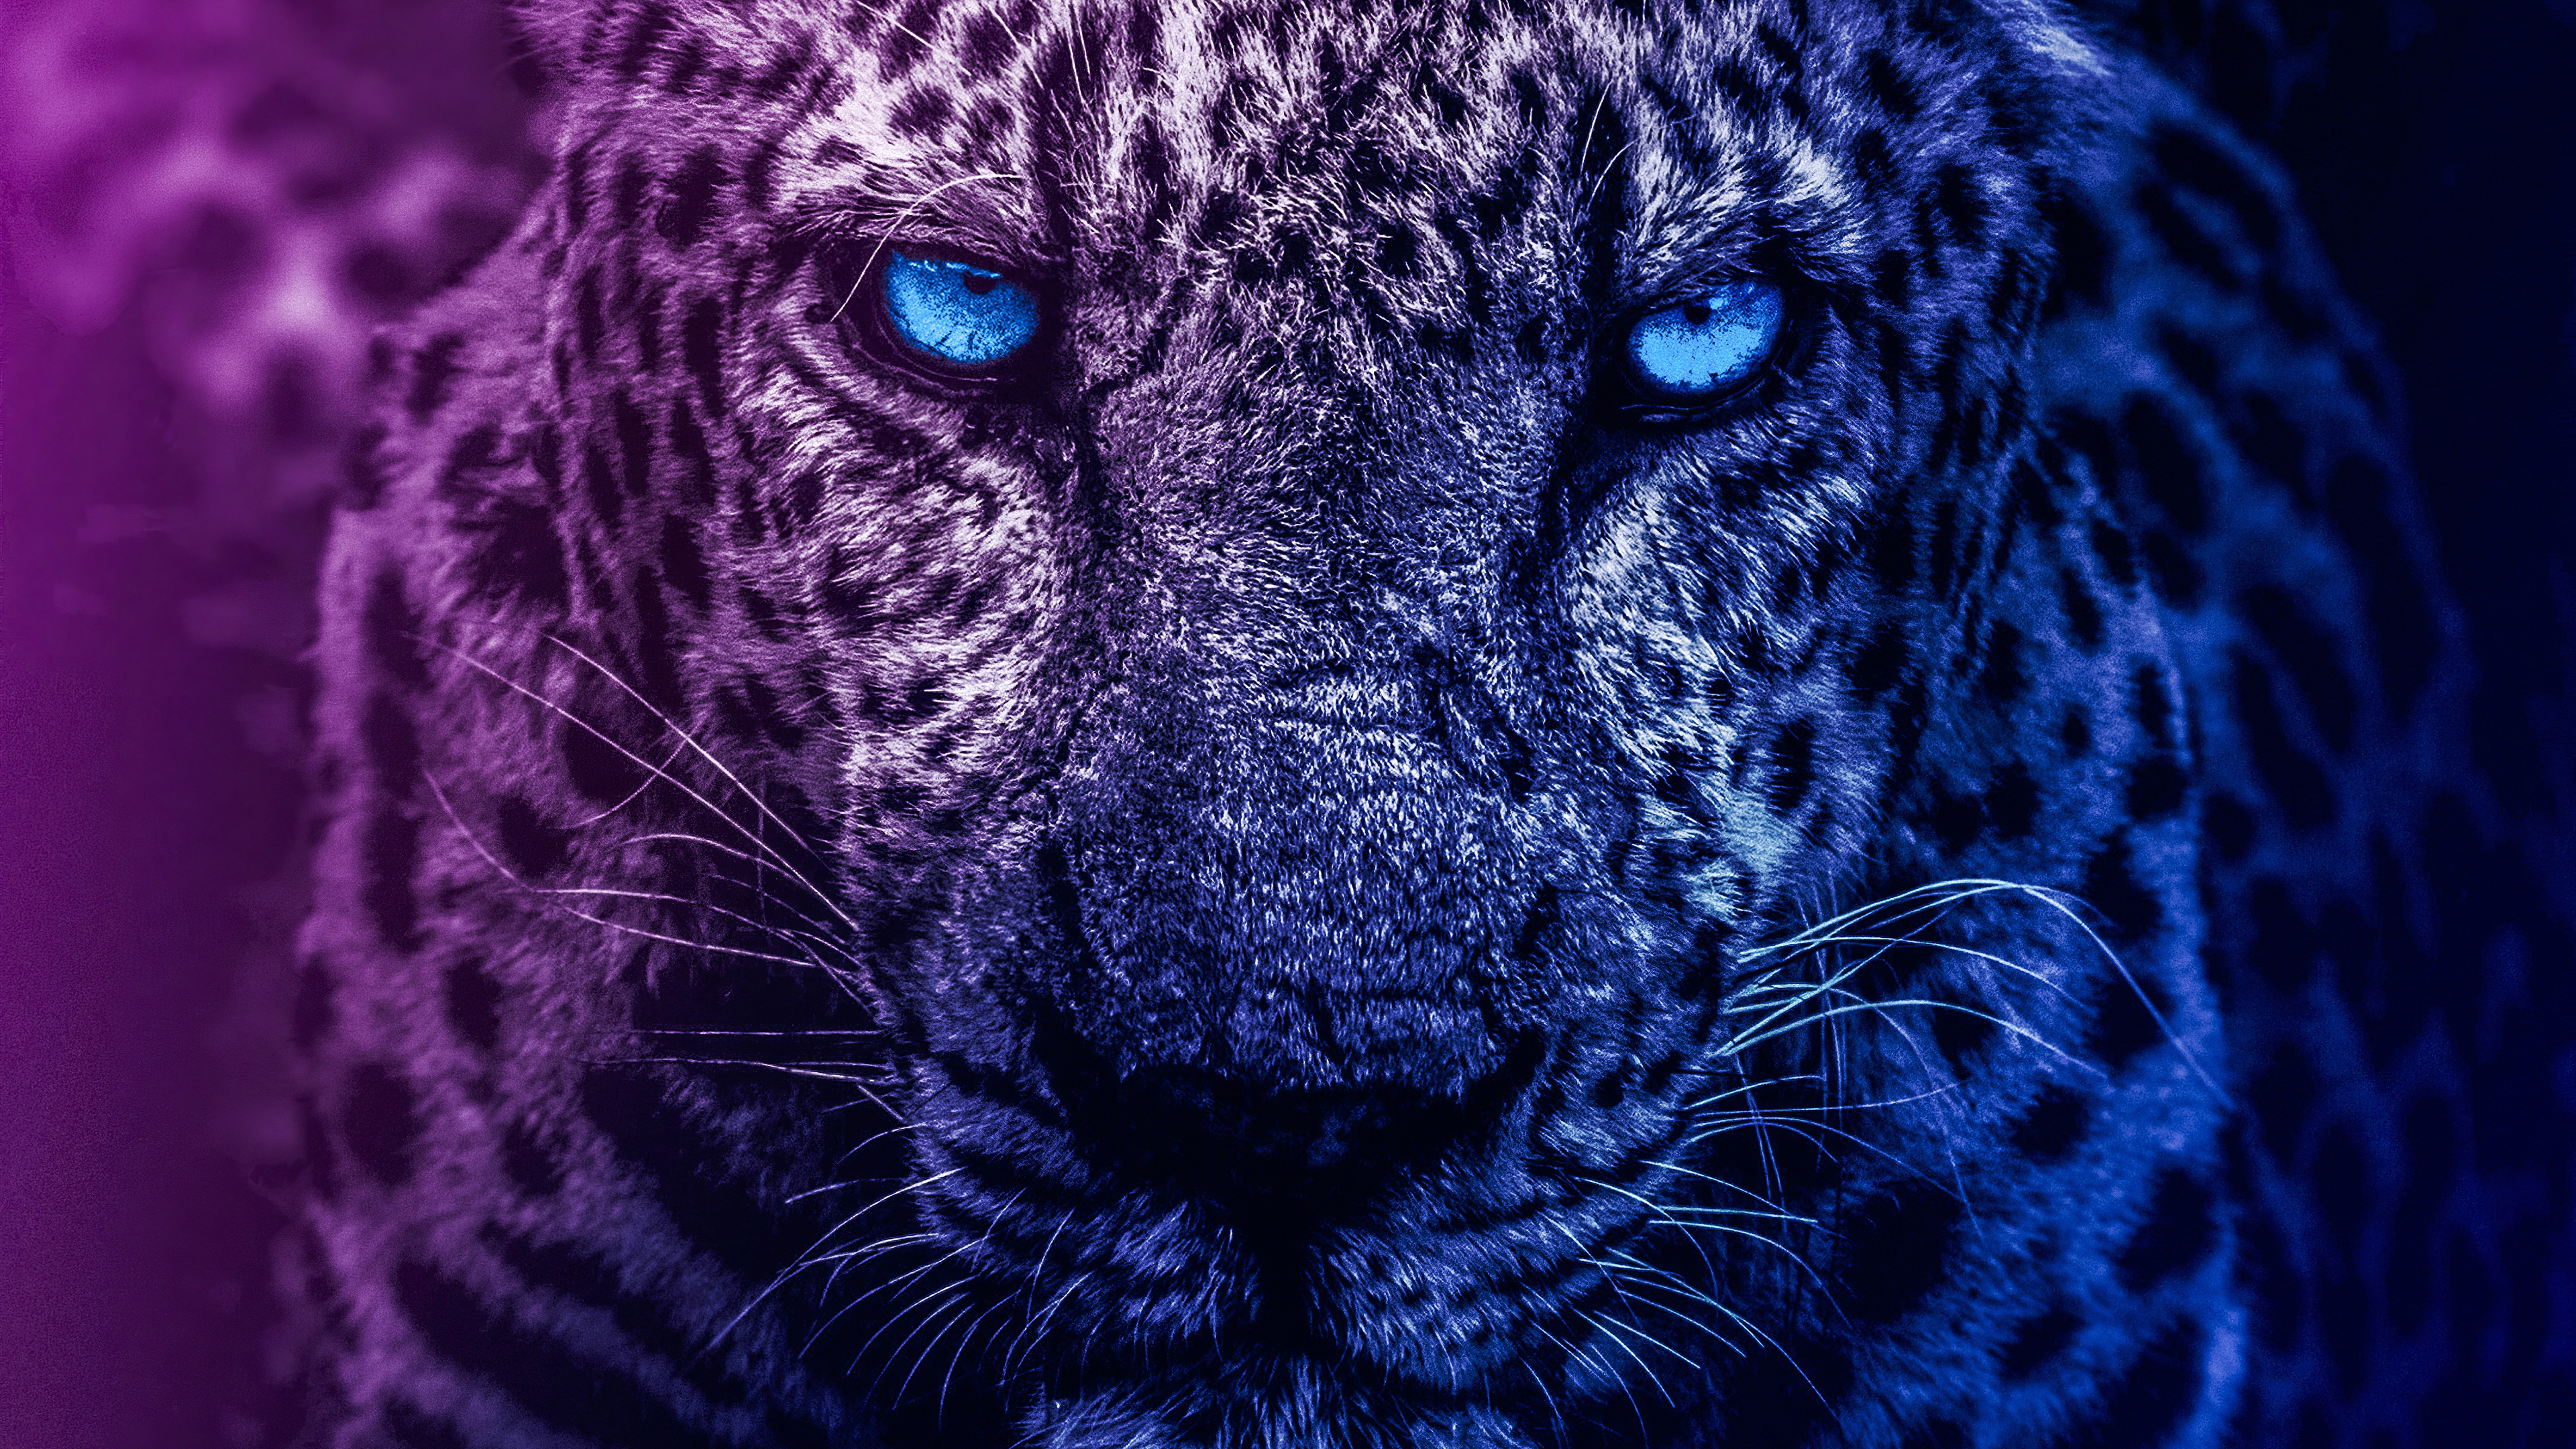 Lion Blue Eyes Hd Animals 4k Wallpapers Images Backgrounds Photos And Pictures